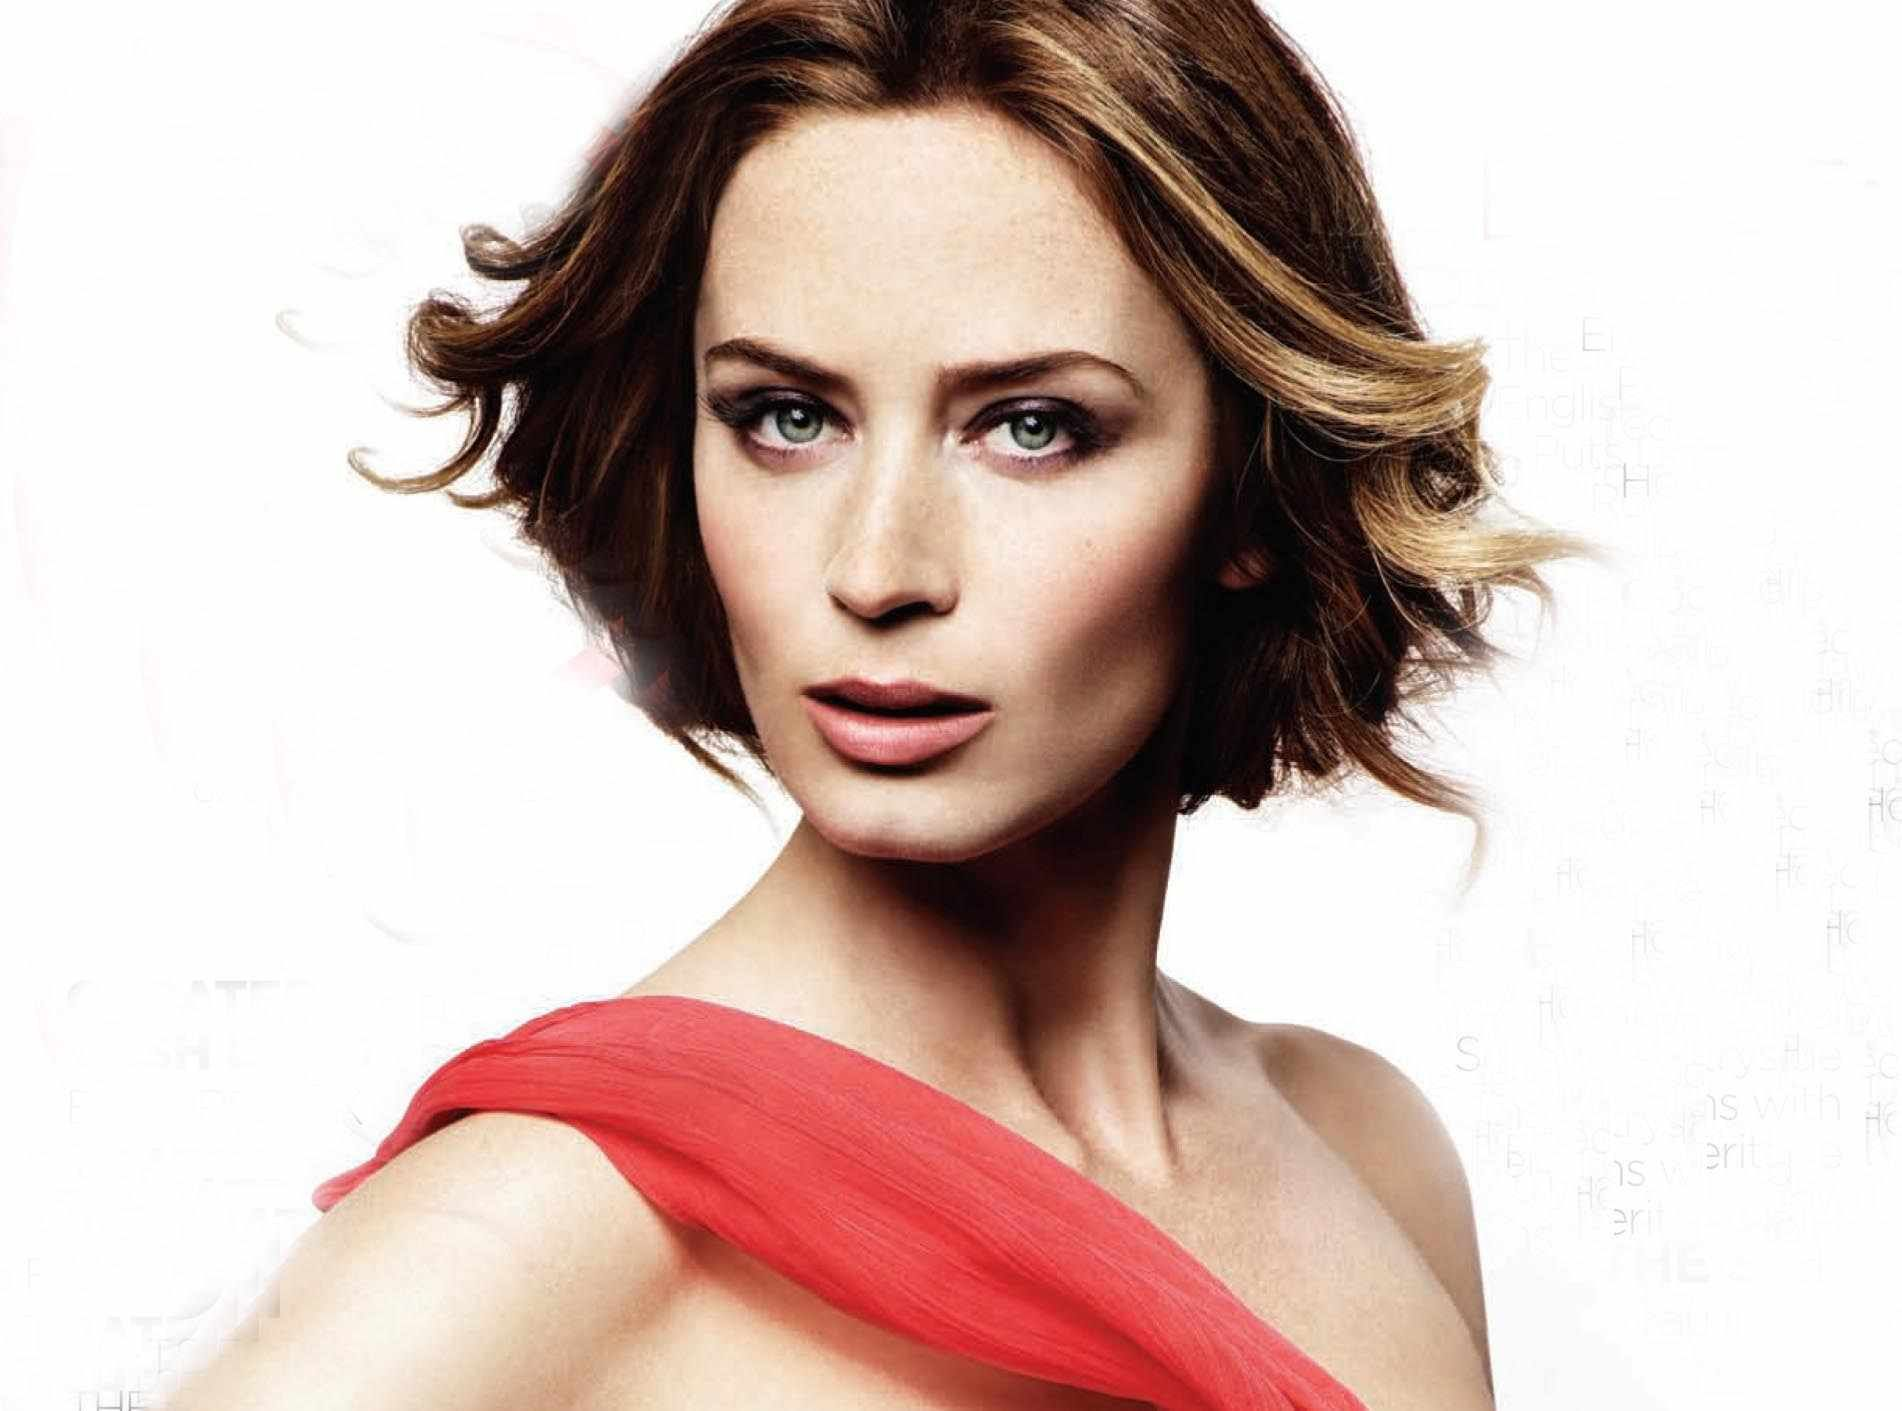 emily blunt hd wallpapers for desktop download